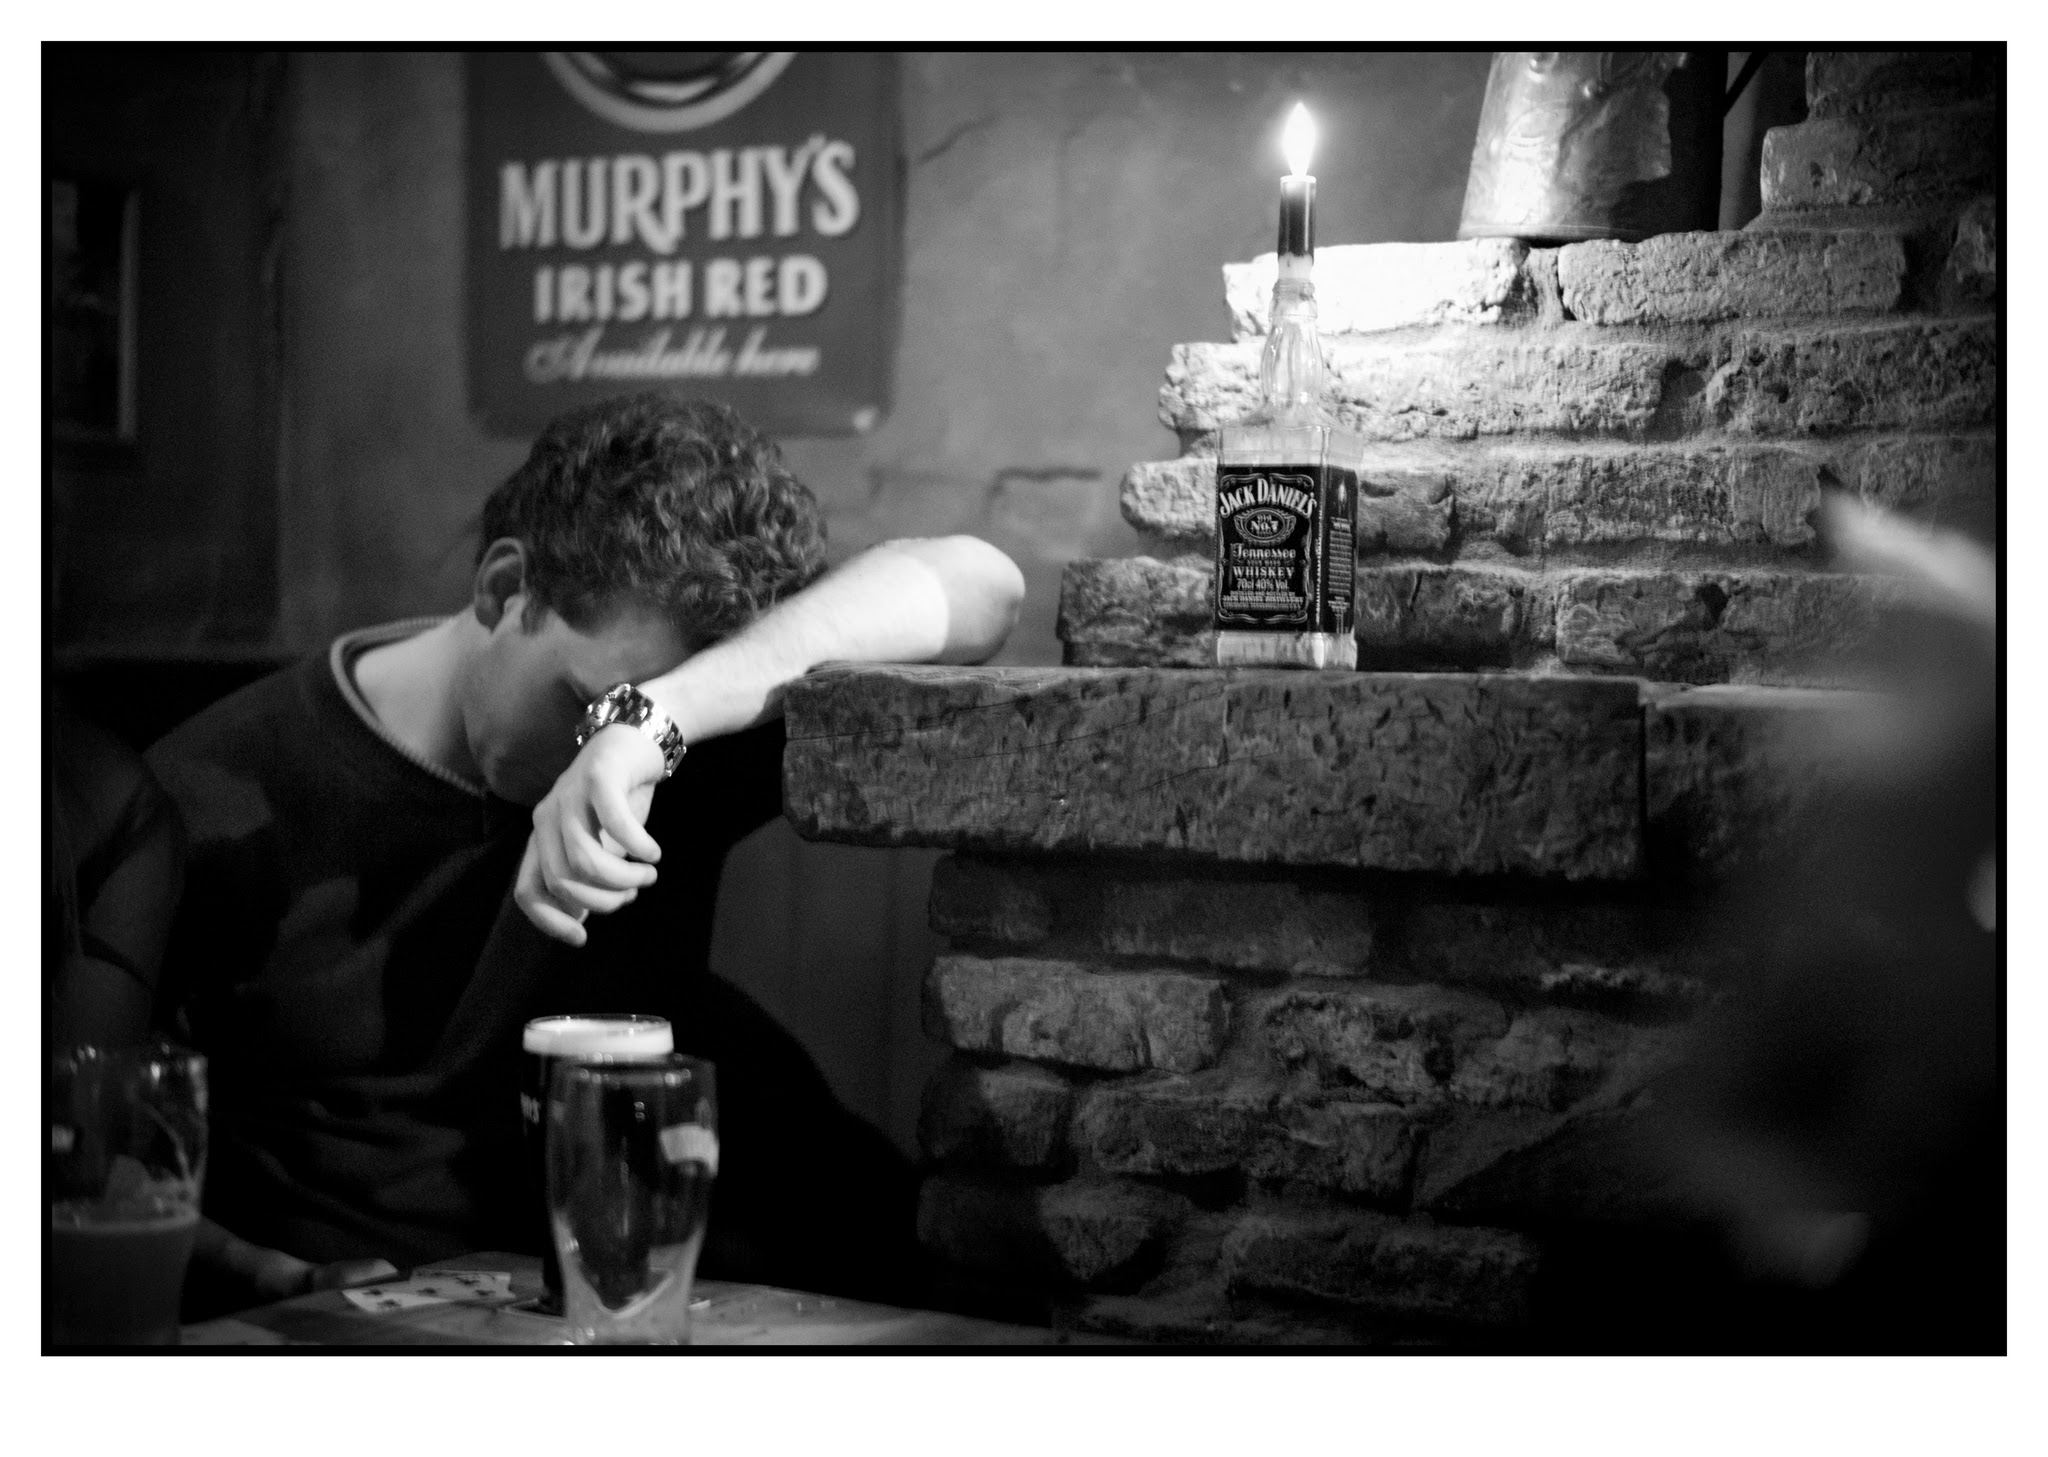 Murphy's Irish red | Paddy Murphy's, Rotterdam, 2012